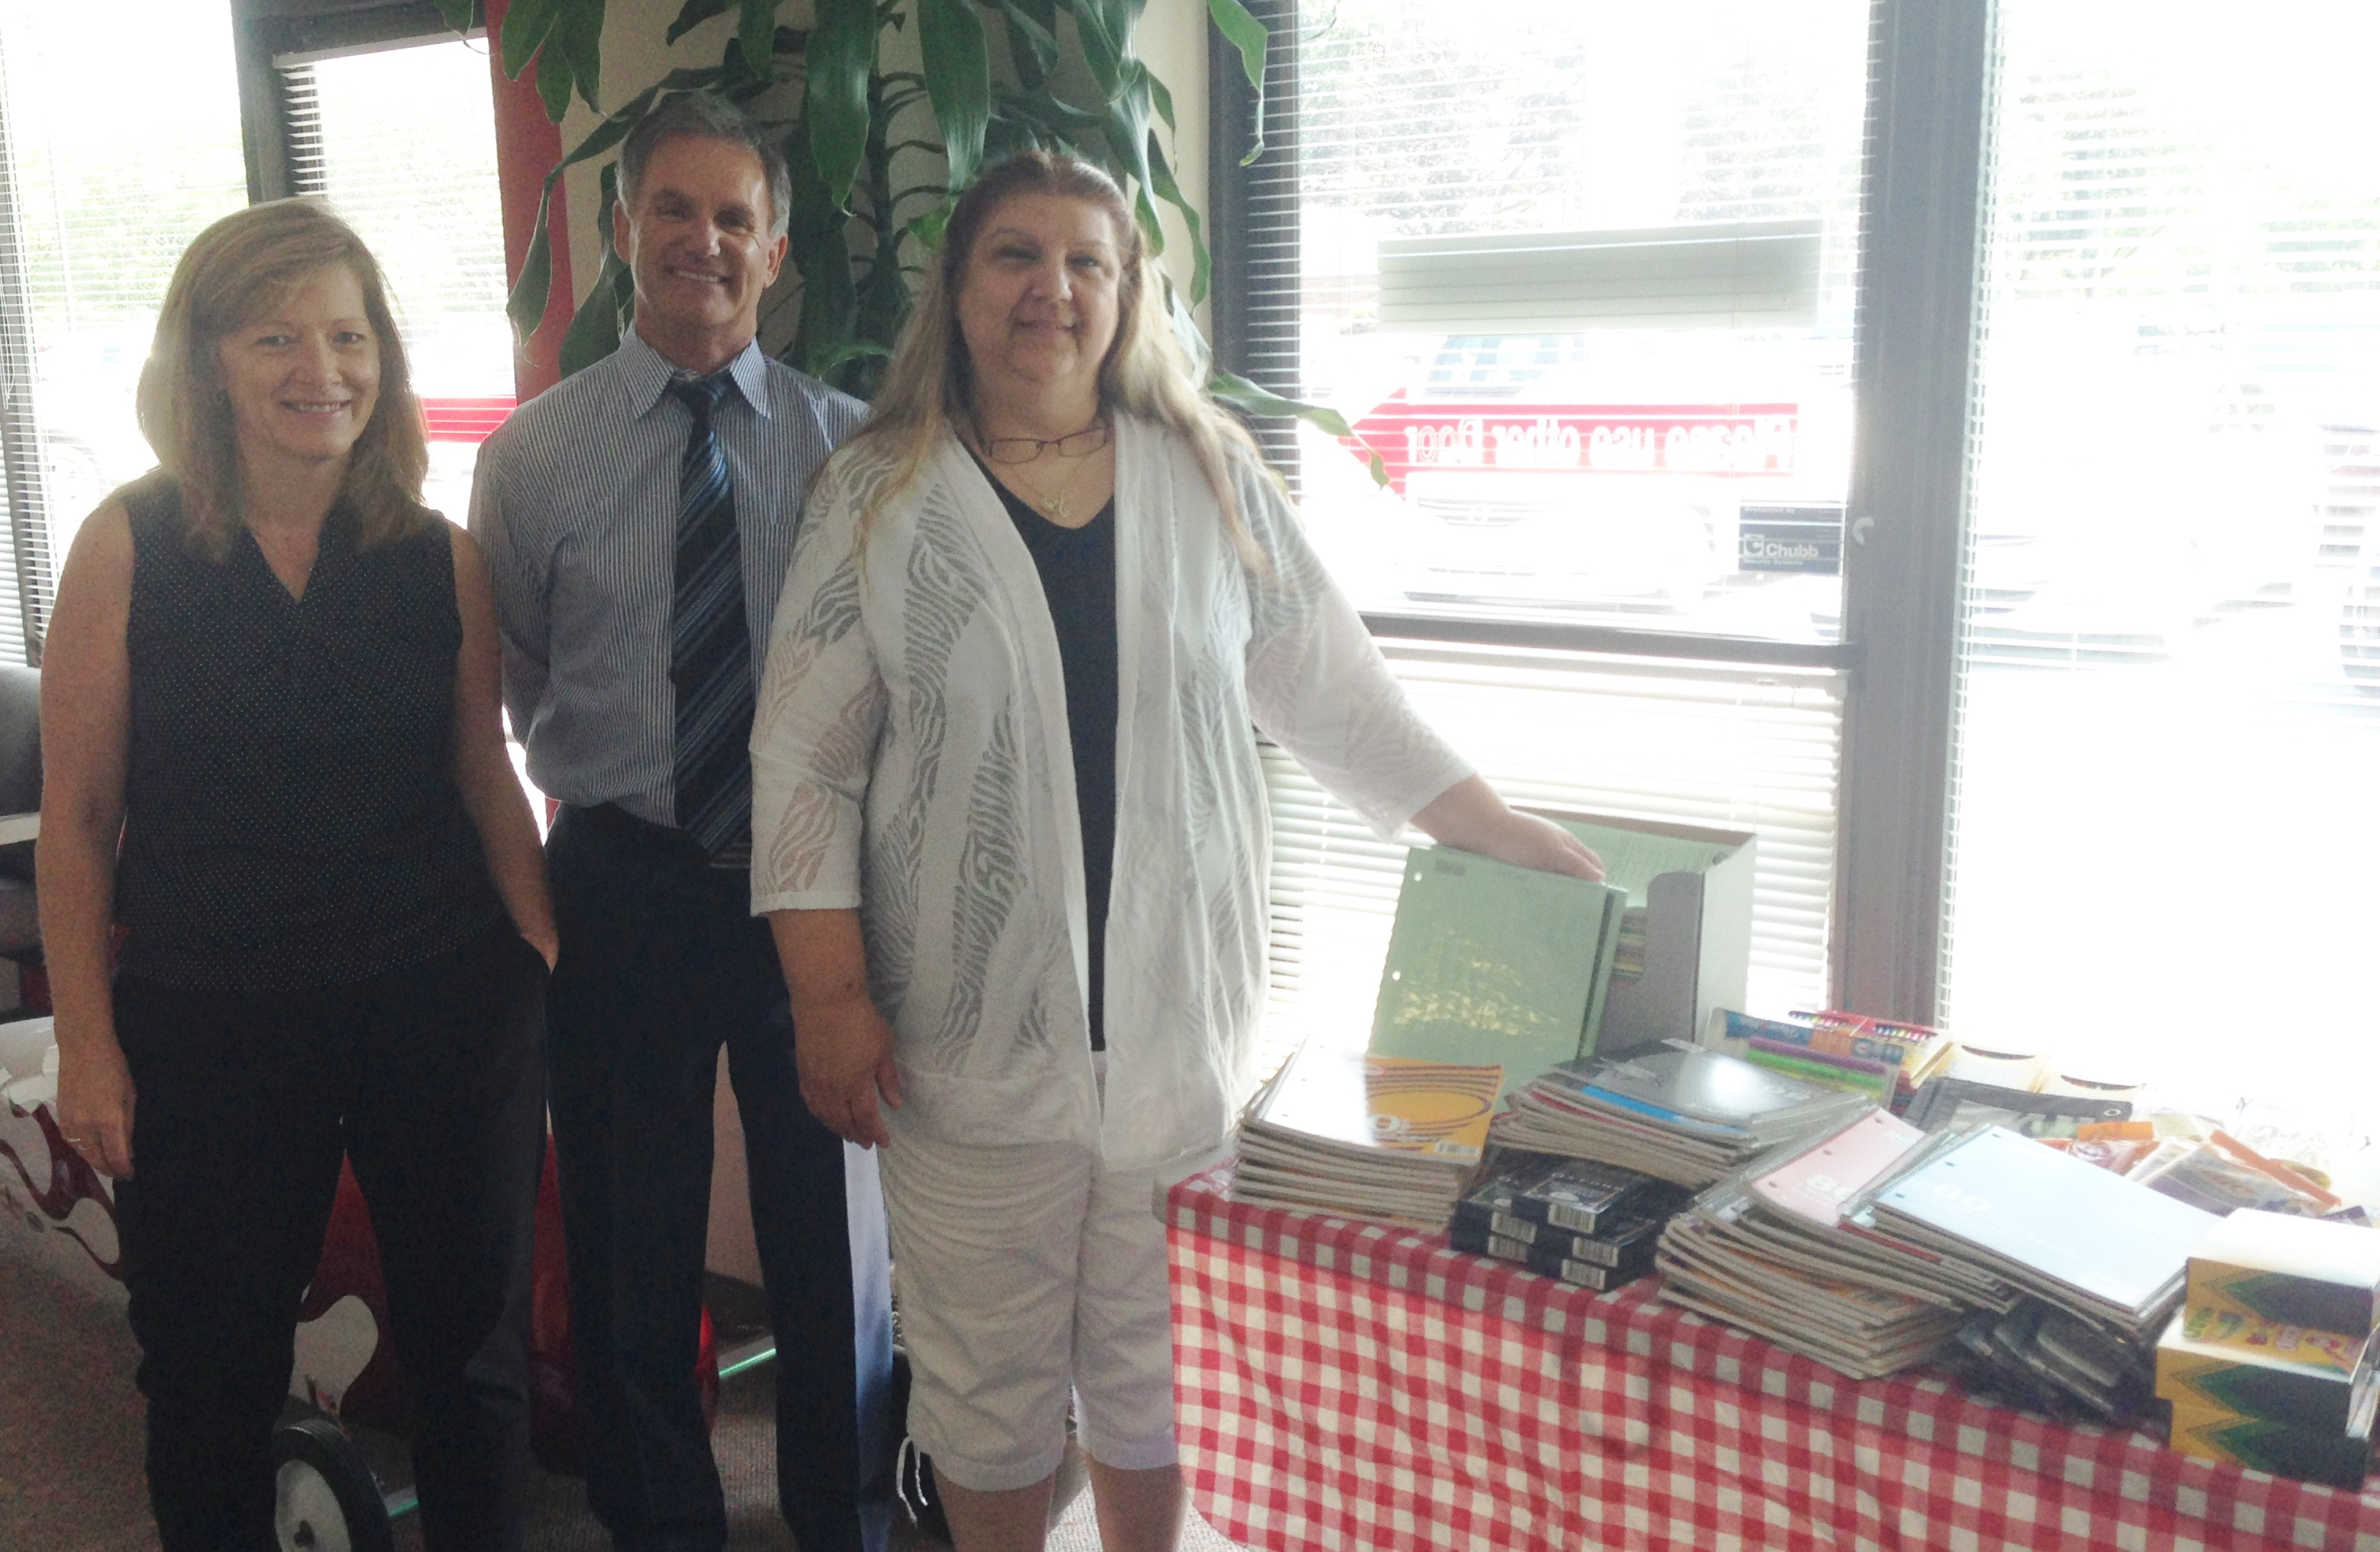 Pictured from left to right: Wanda Smith, Jim Roughley and Lisa Storey